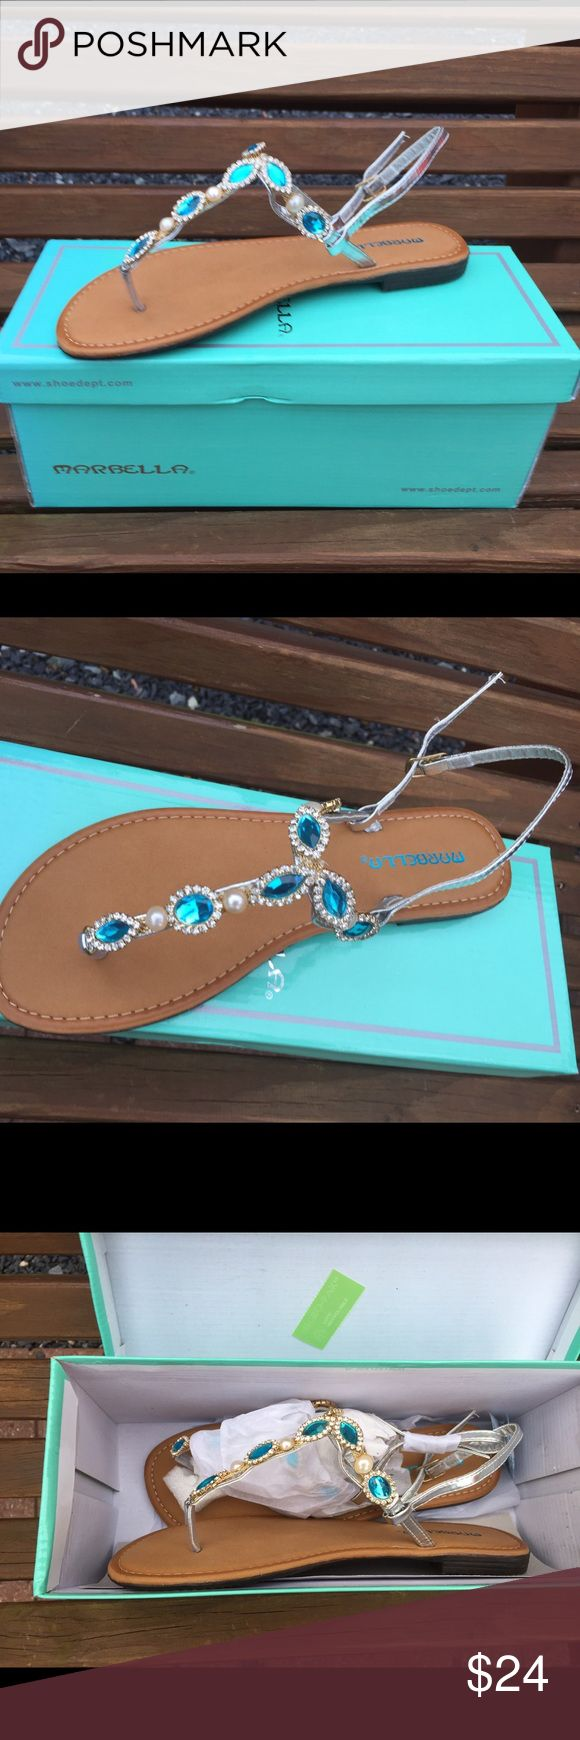 Marbella Downtown Turquoise Sandals Size 7 Size 7. New in the box. Marbella Shoes Sandals